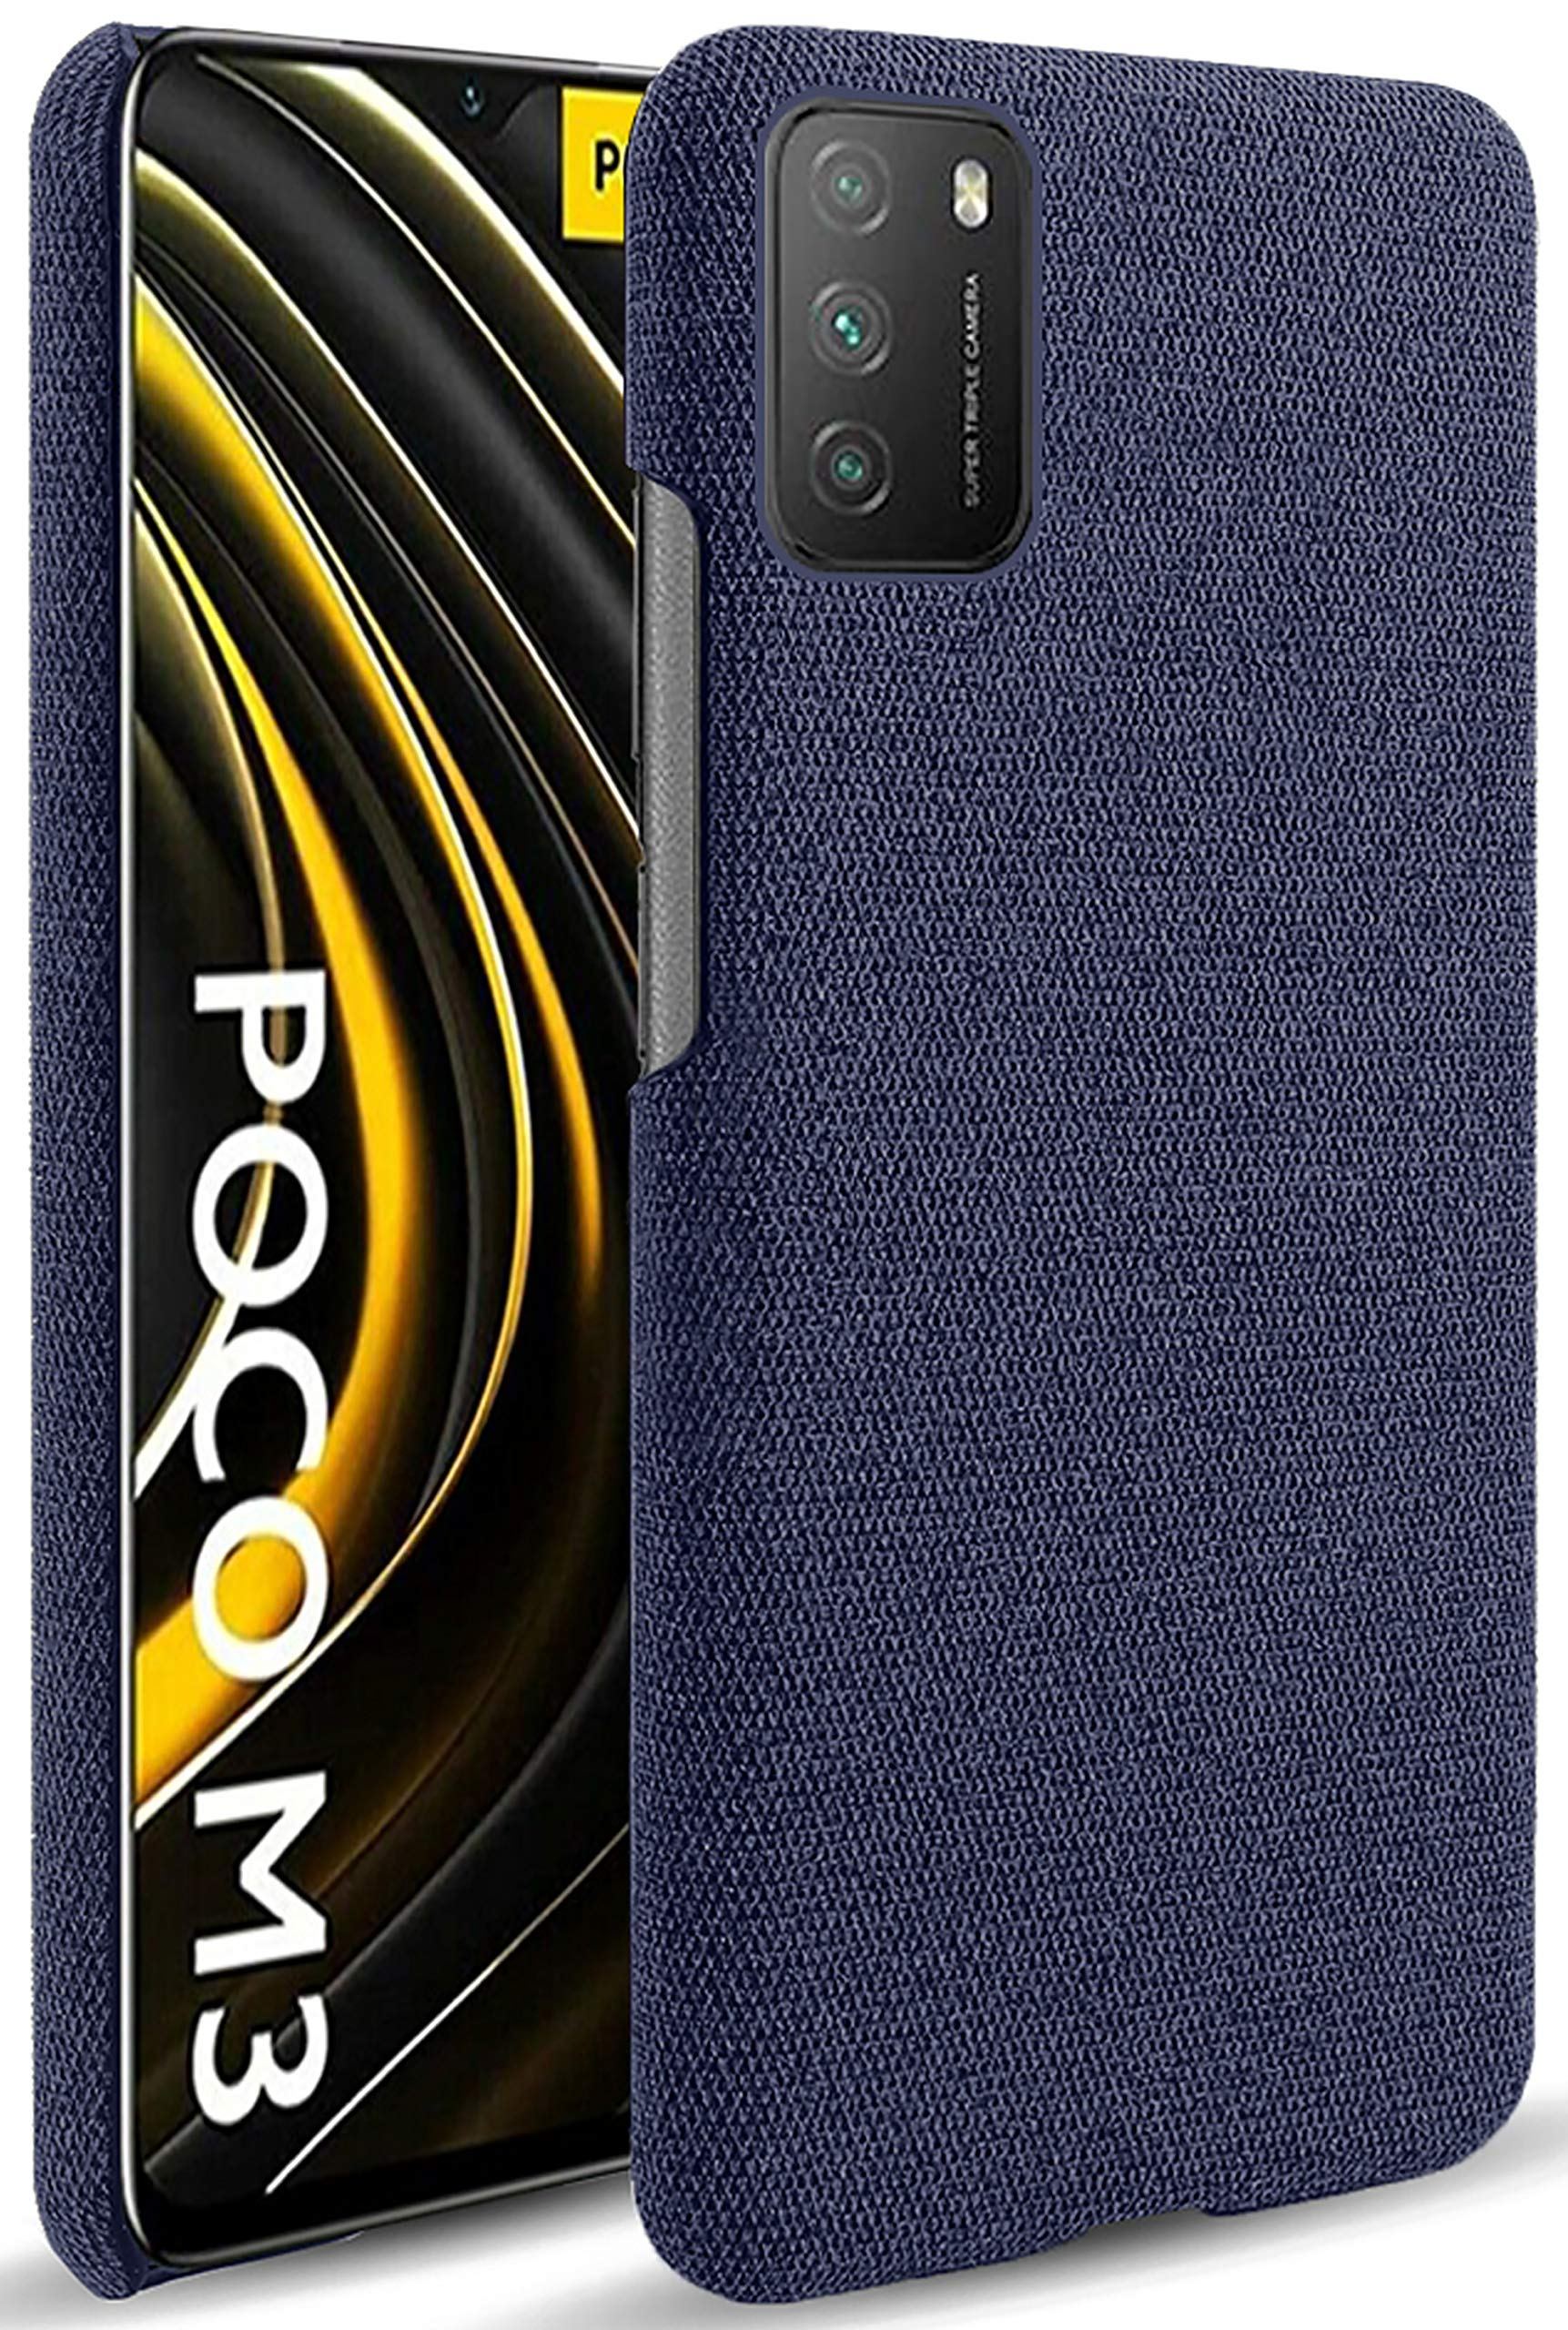 Woven Soft Fabric Case for Poco M3 Back Cover, Shock Protection Slim Hard Anti Slip Back Cover, Blue